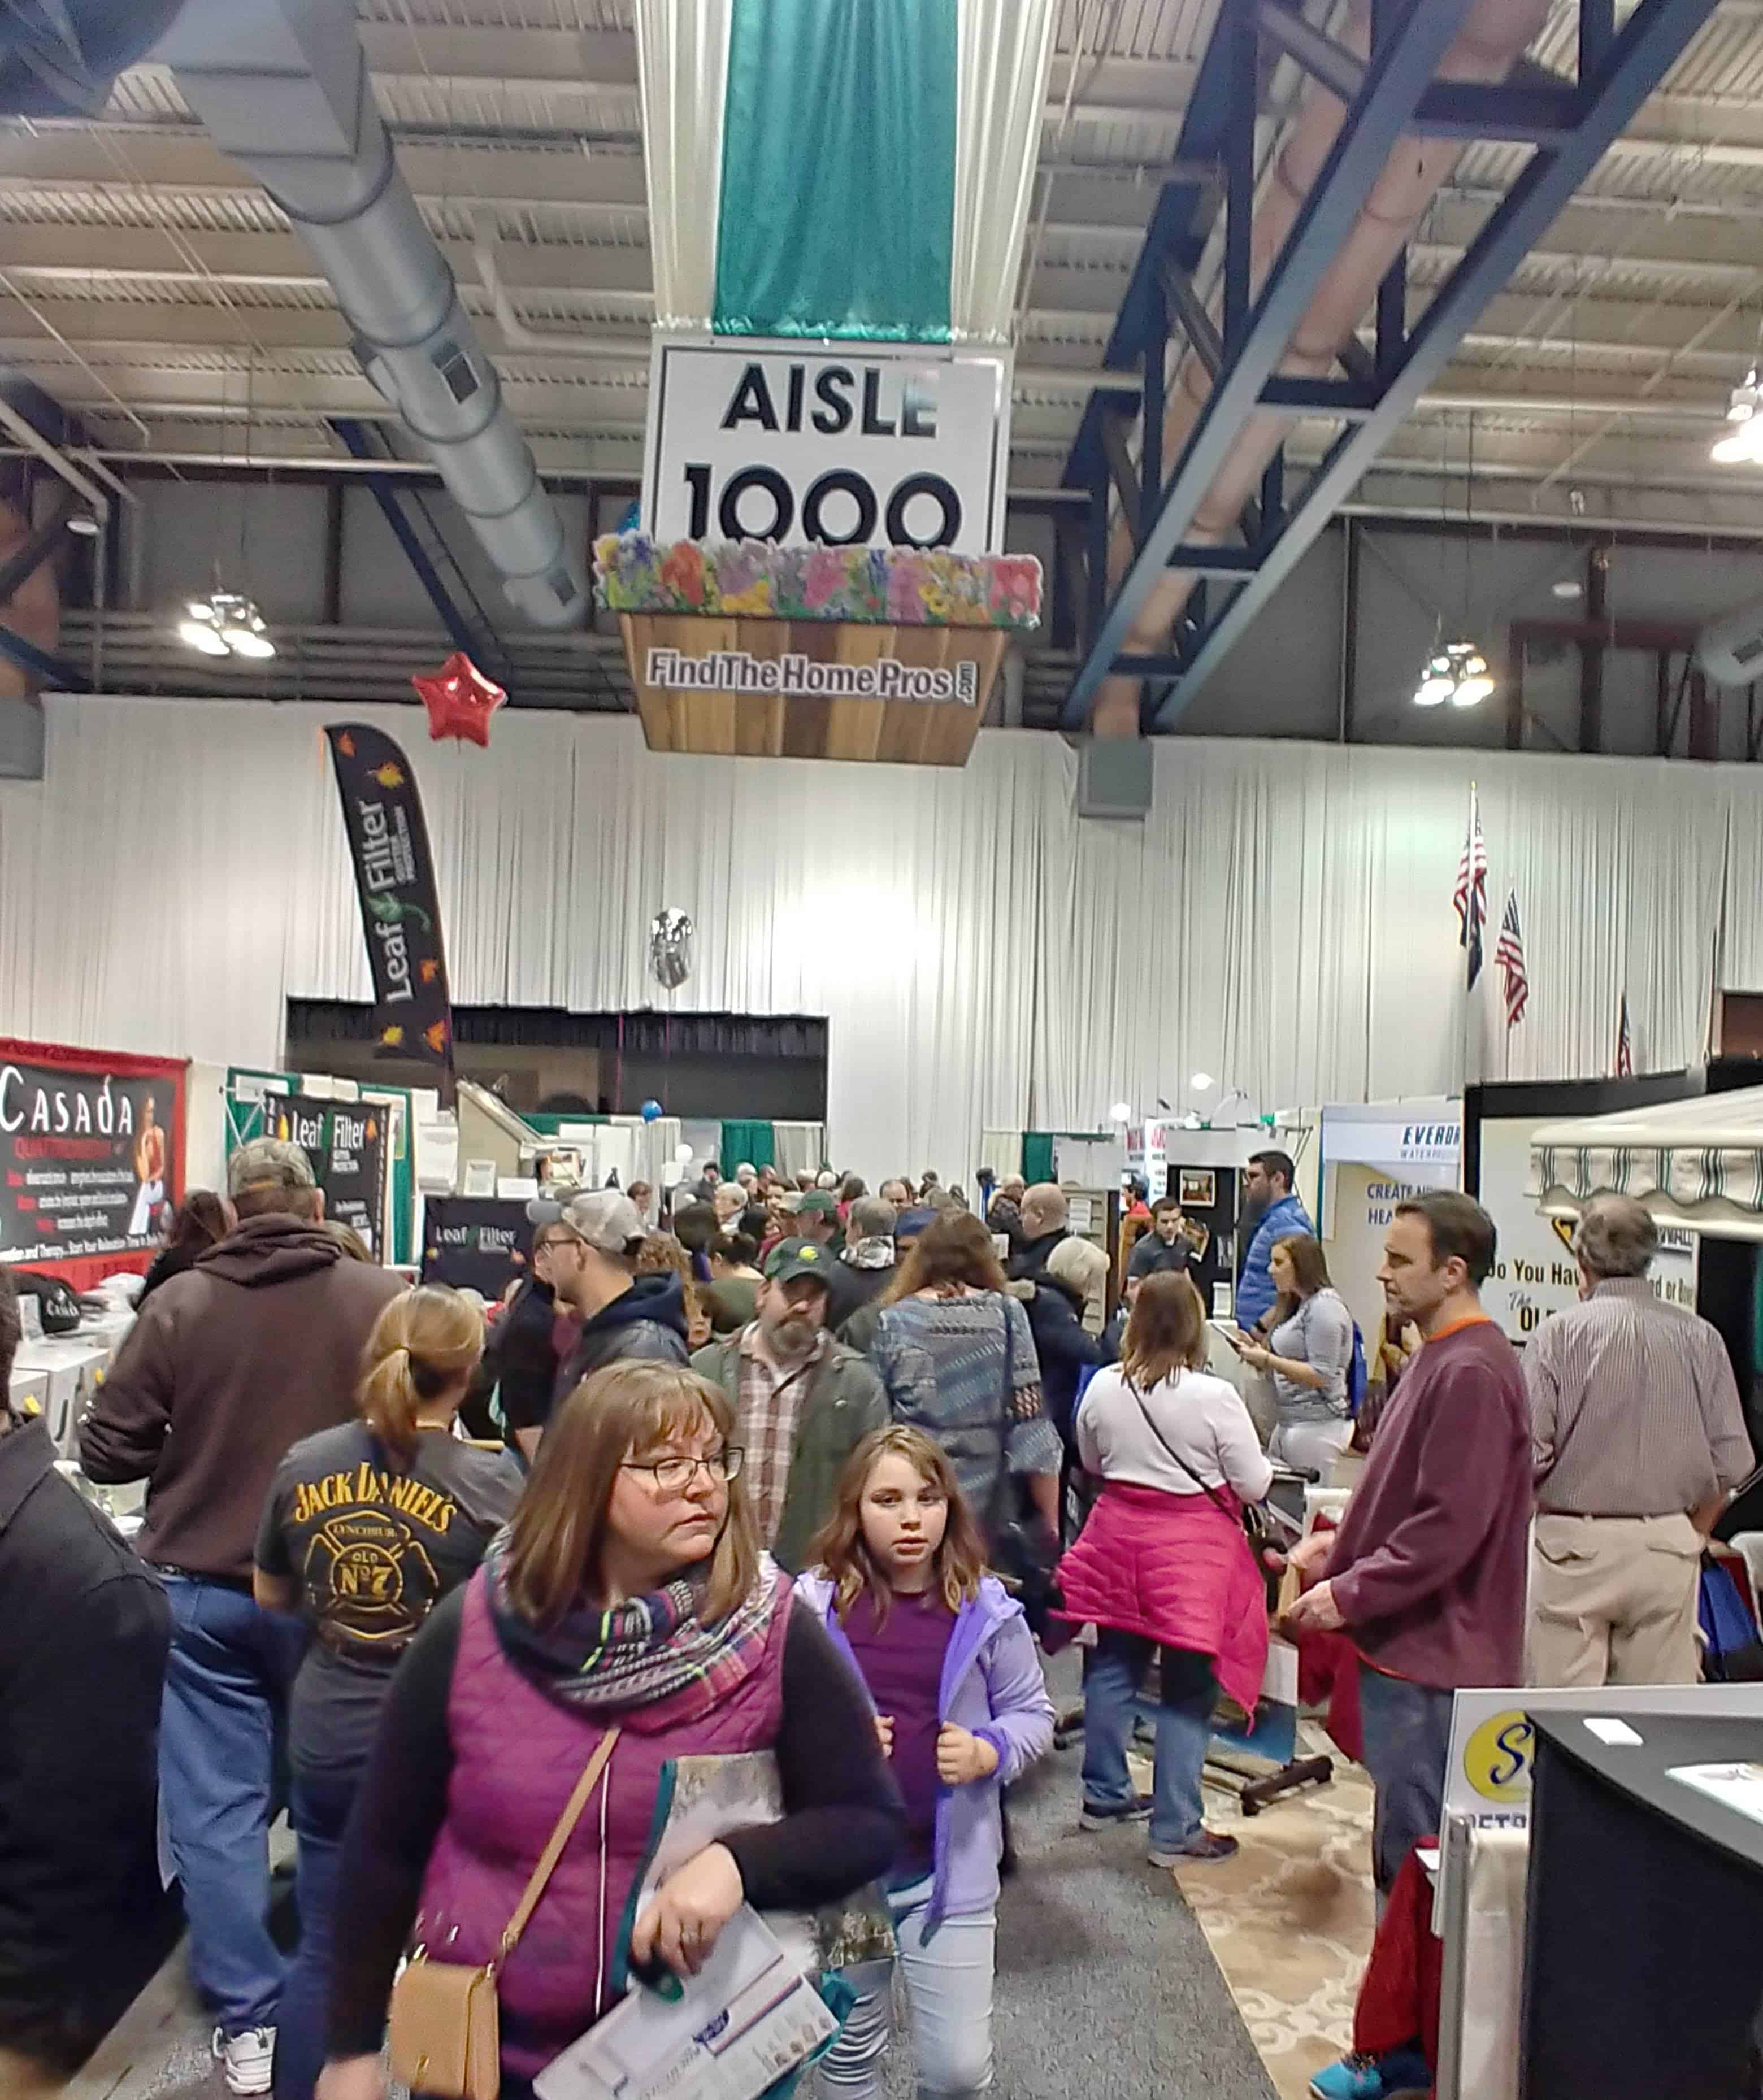 Rochester Home And Garden Show 2020.Roc Home Garden Show Find The Home Pros